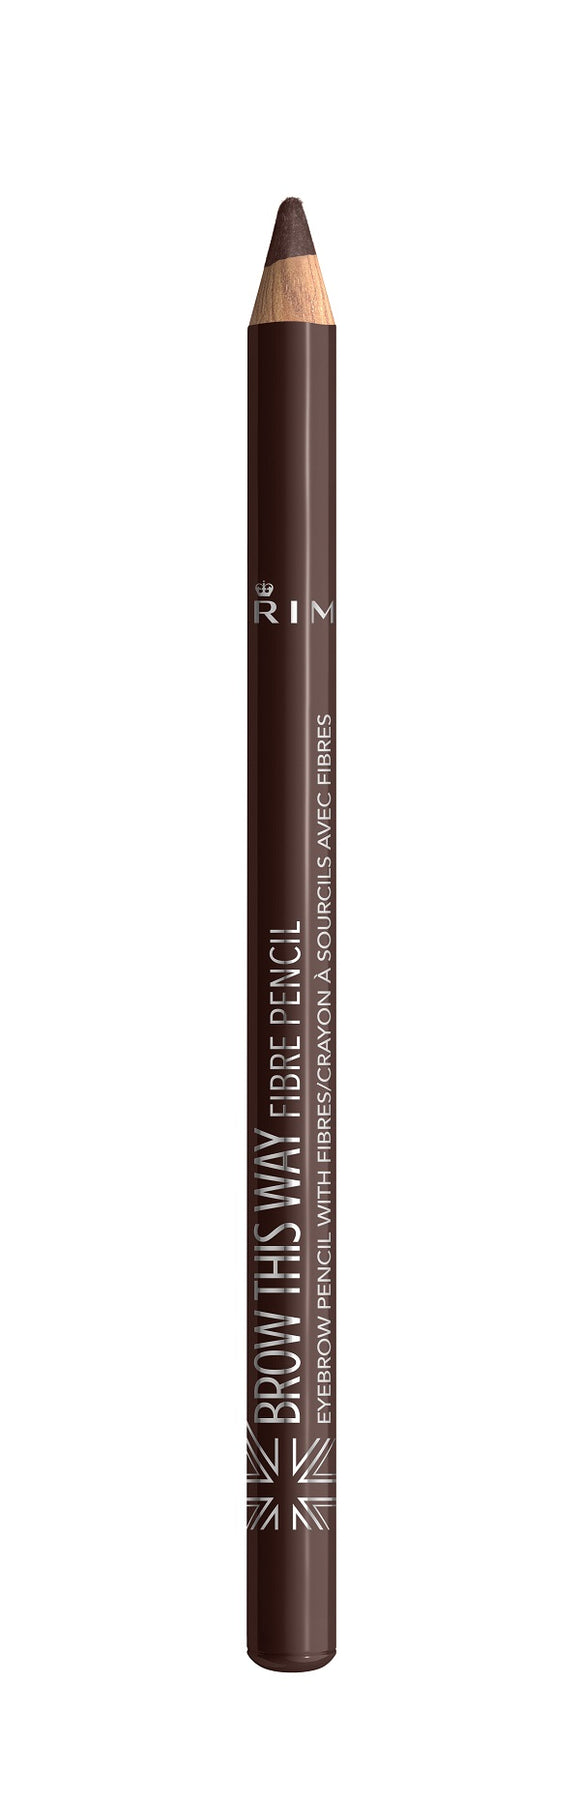 Rimmel Brow This Way Brow Pencil Fibre 003 Dark